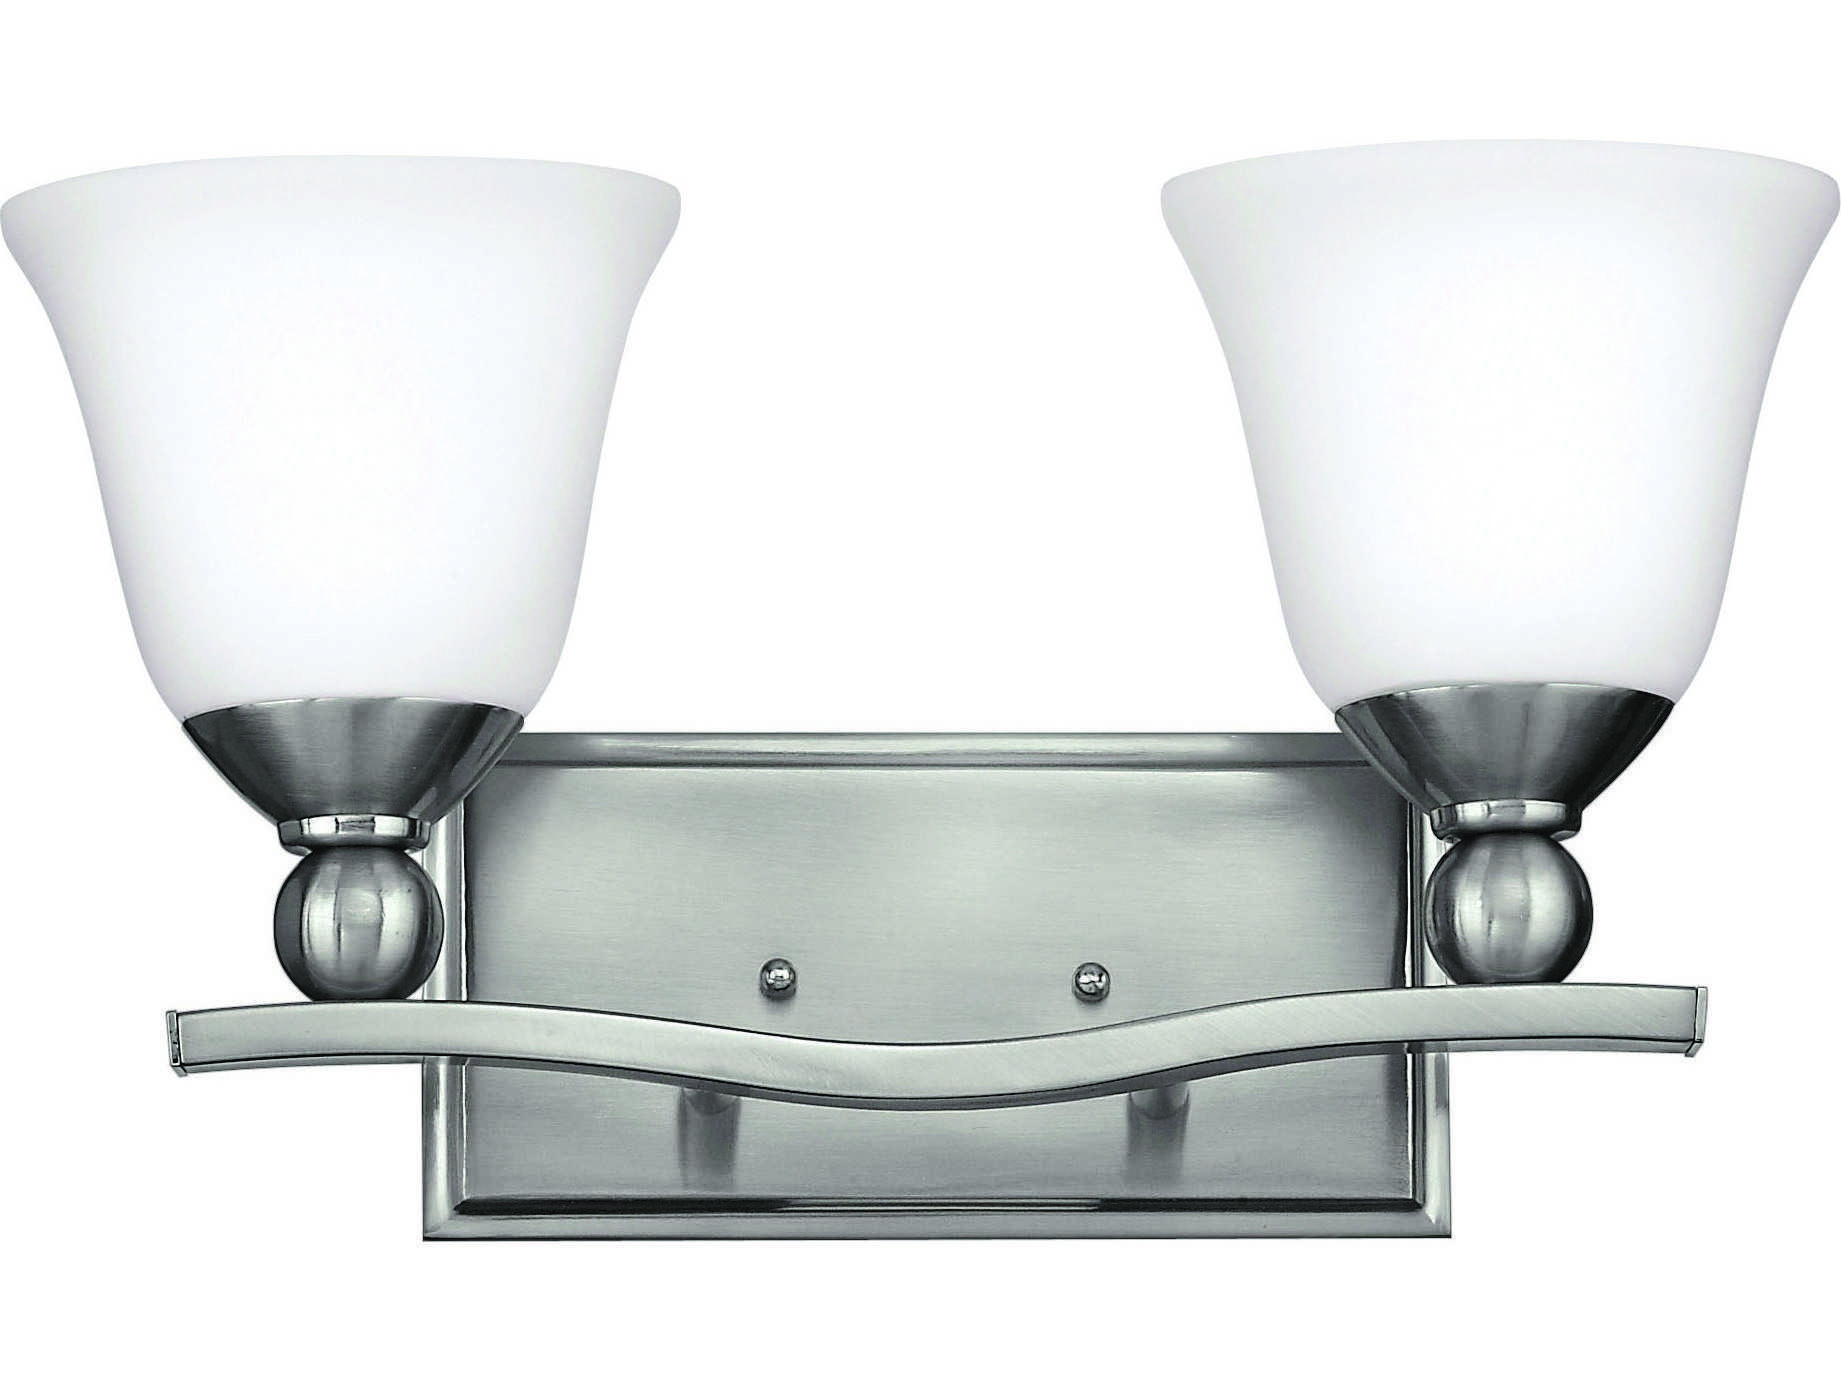 Hinkley Lighting Bolla Brushed Nickel Two-Light CFL Vanity Light HY5892BNGU24